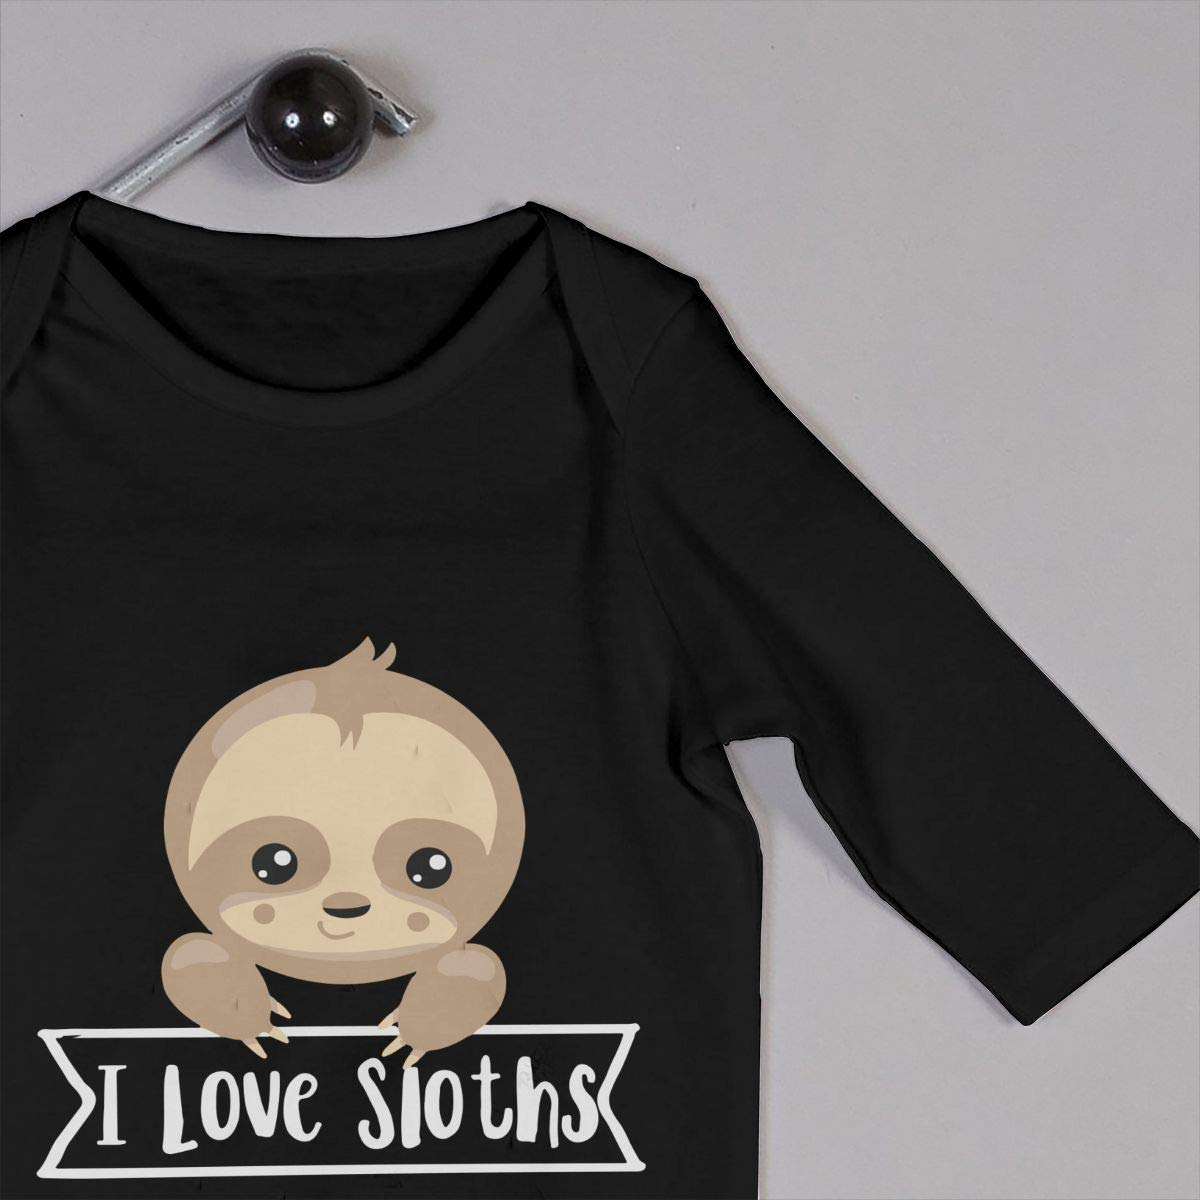 Toddler Round Collar I Love Sloths Long Sleeve Playsuit 100/% Cotton Suit 6-24 Months